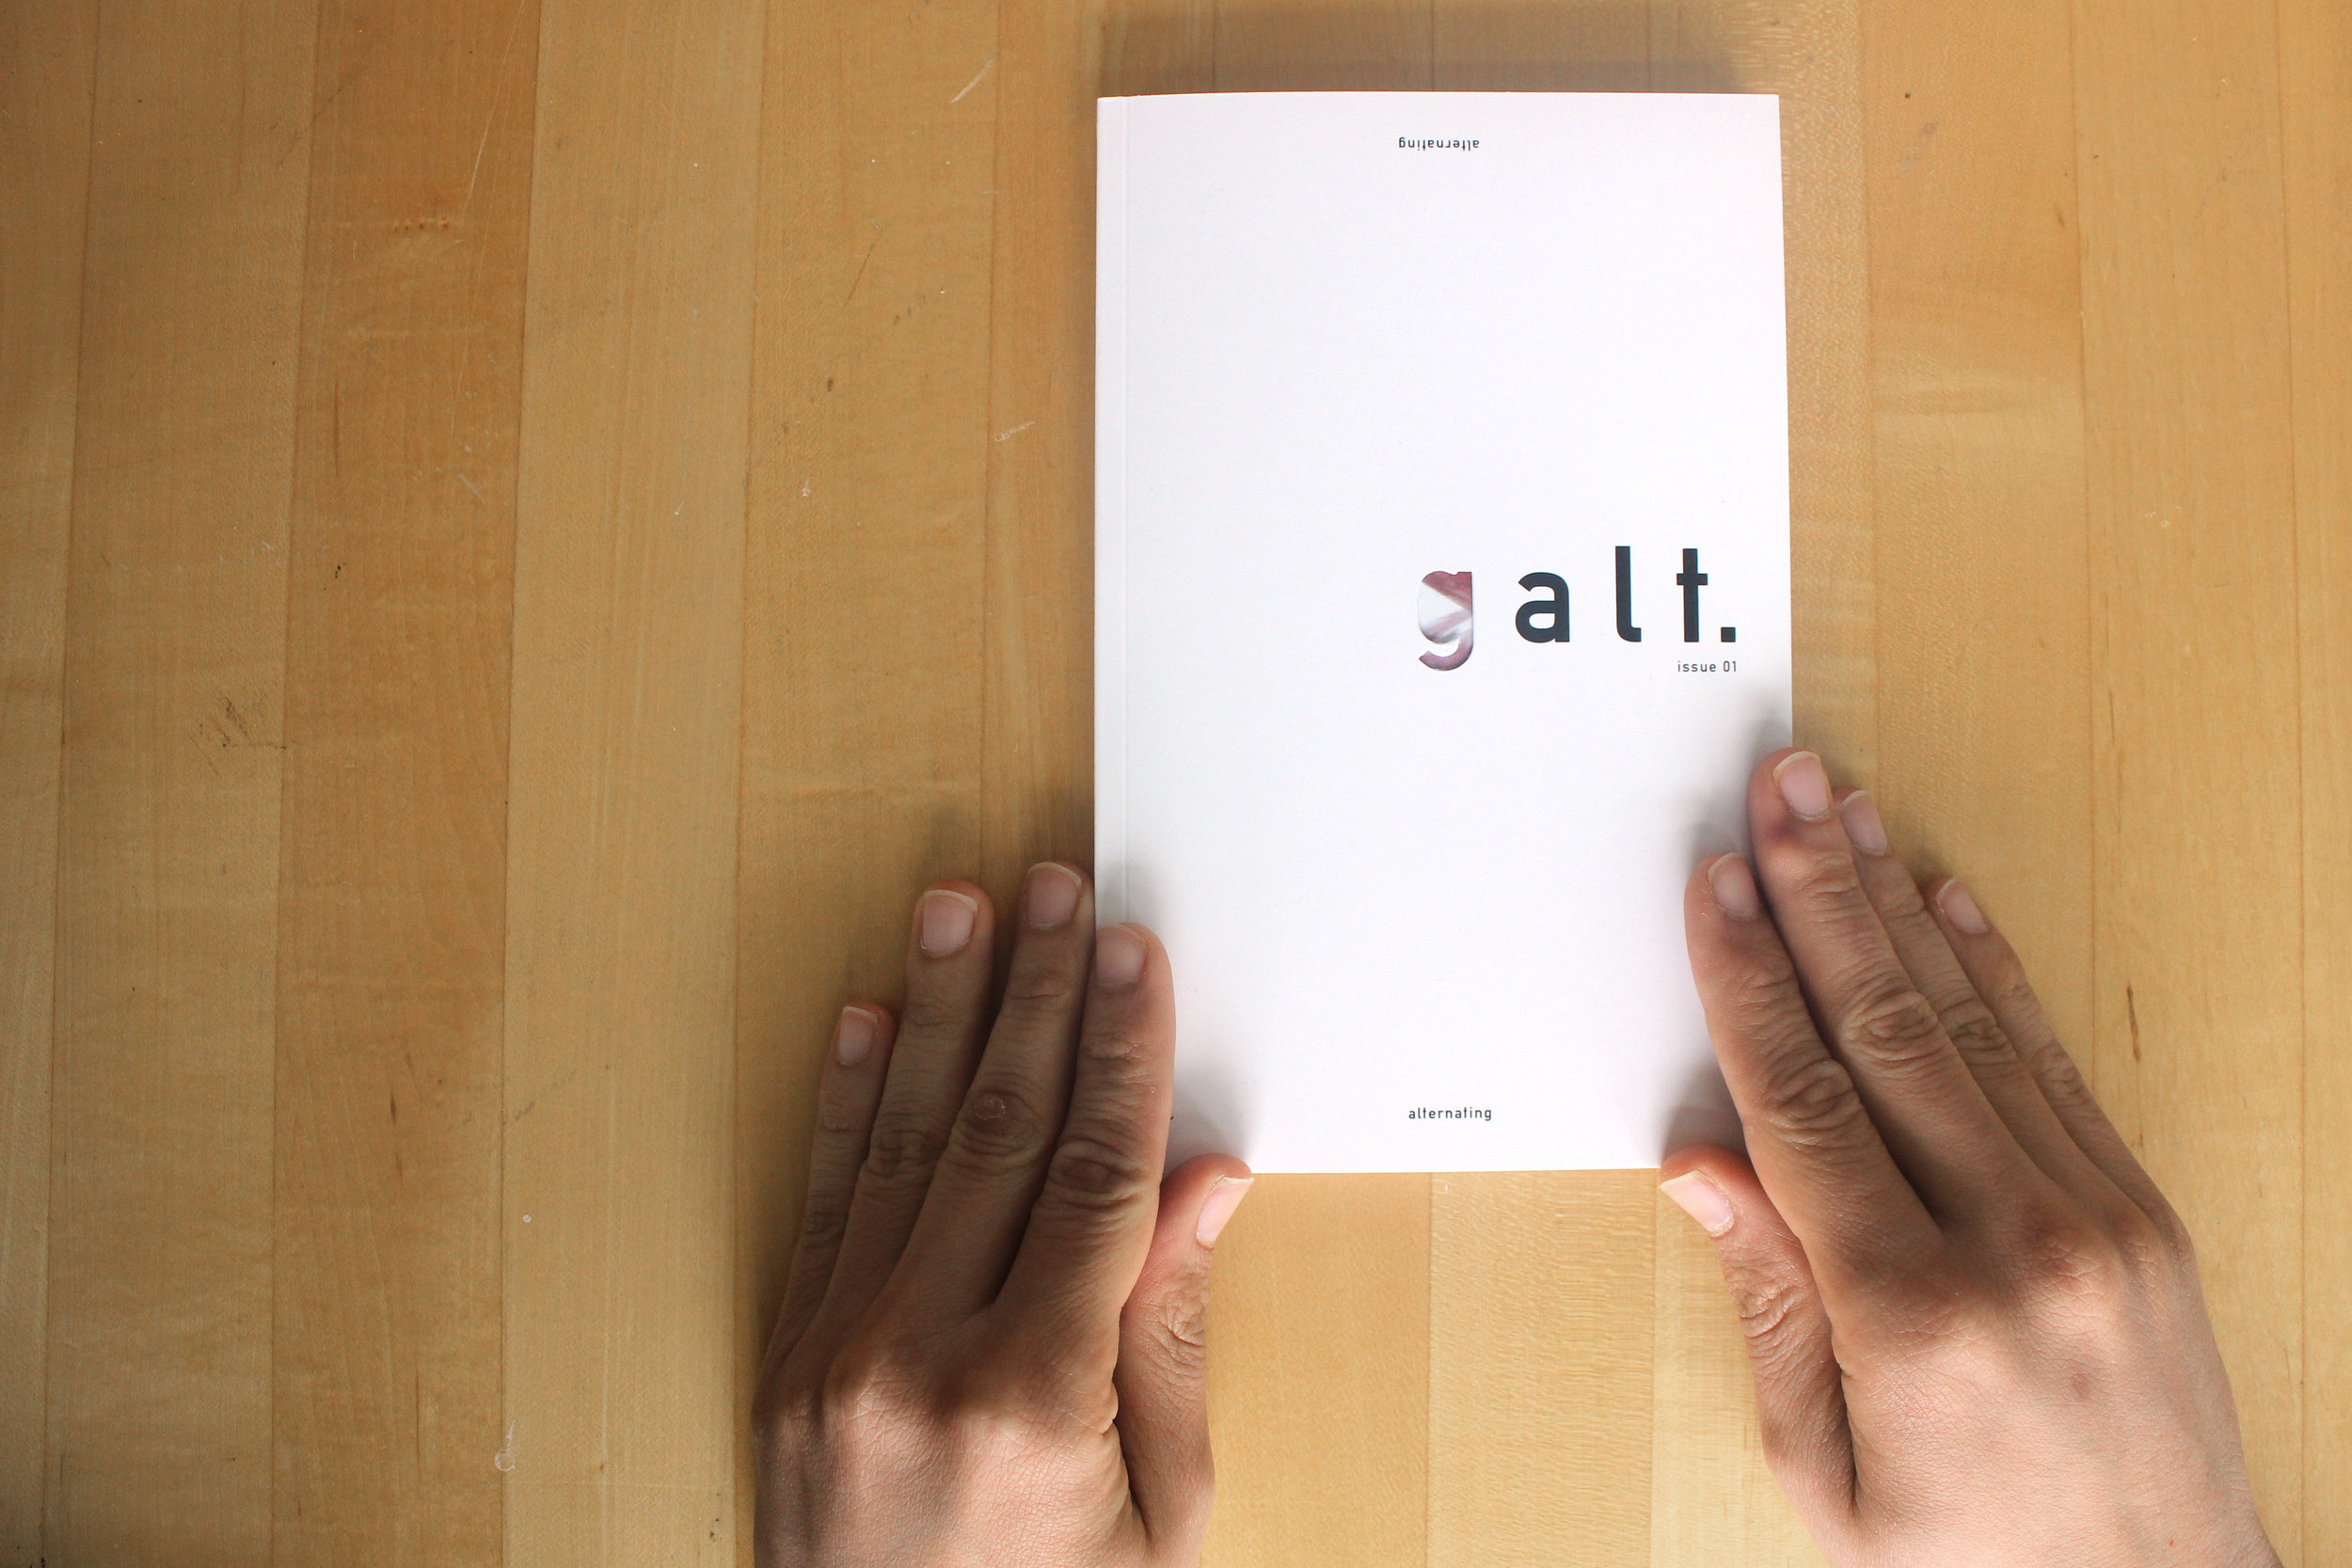 galt. : a student publication at University of Waterloo